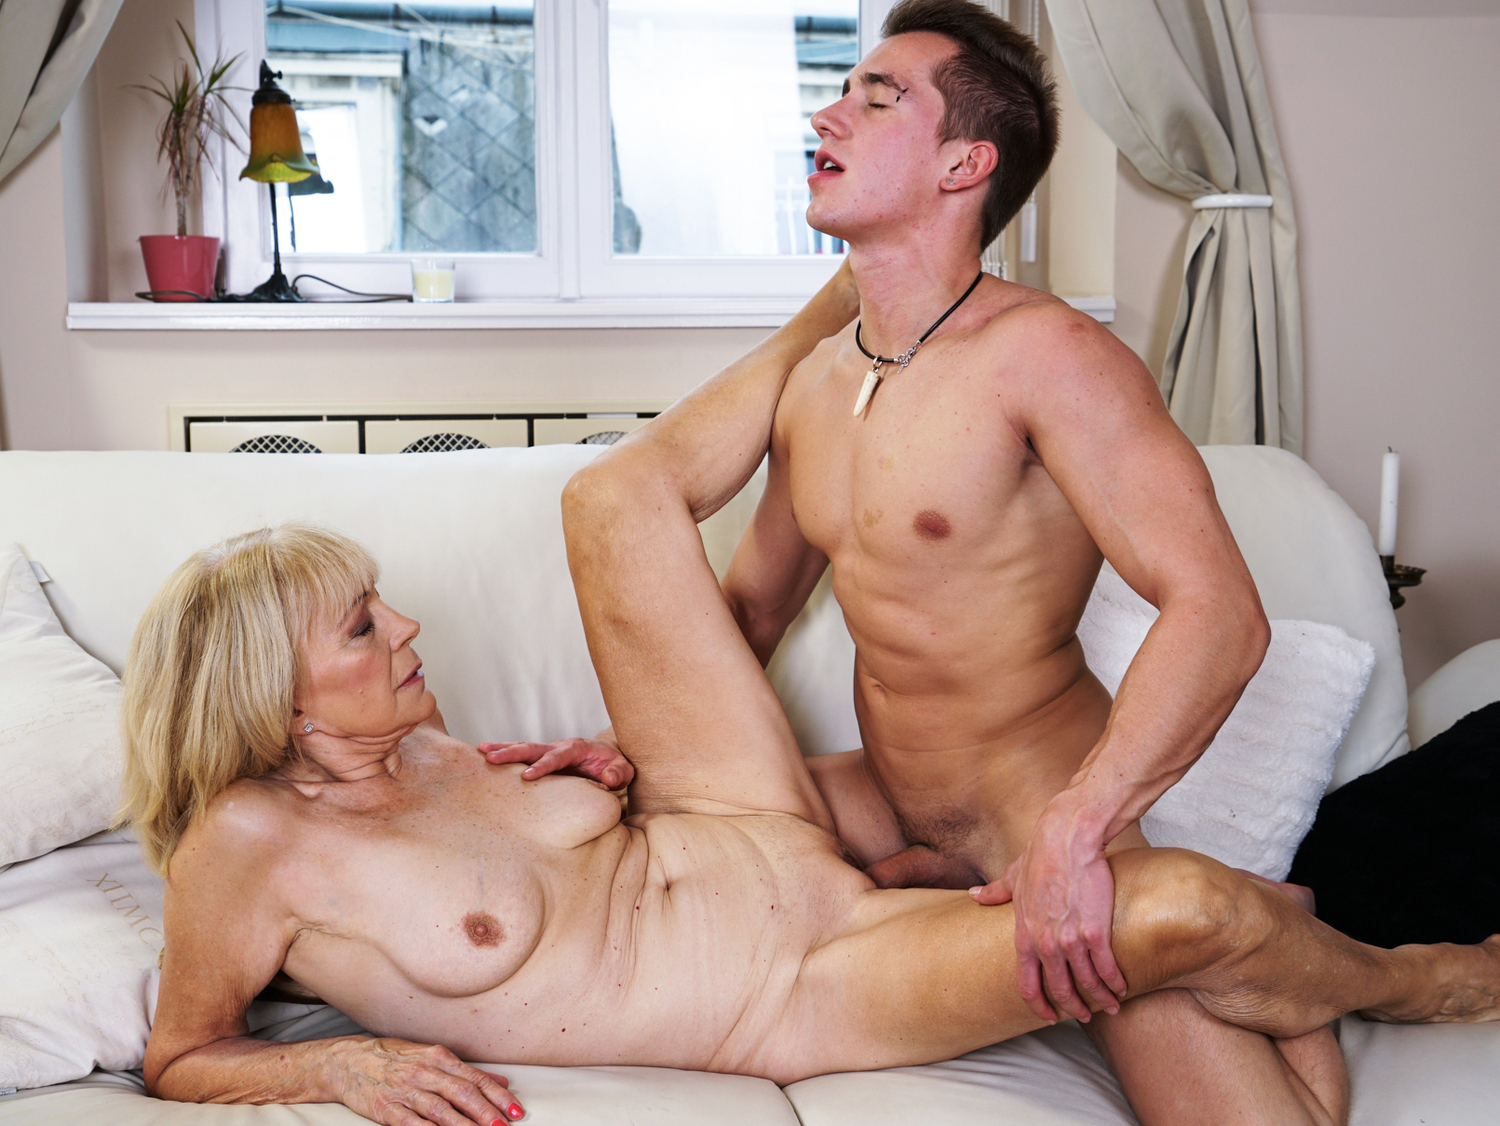 Son have sex with his mom